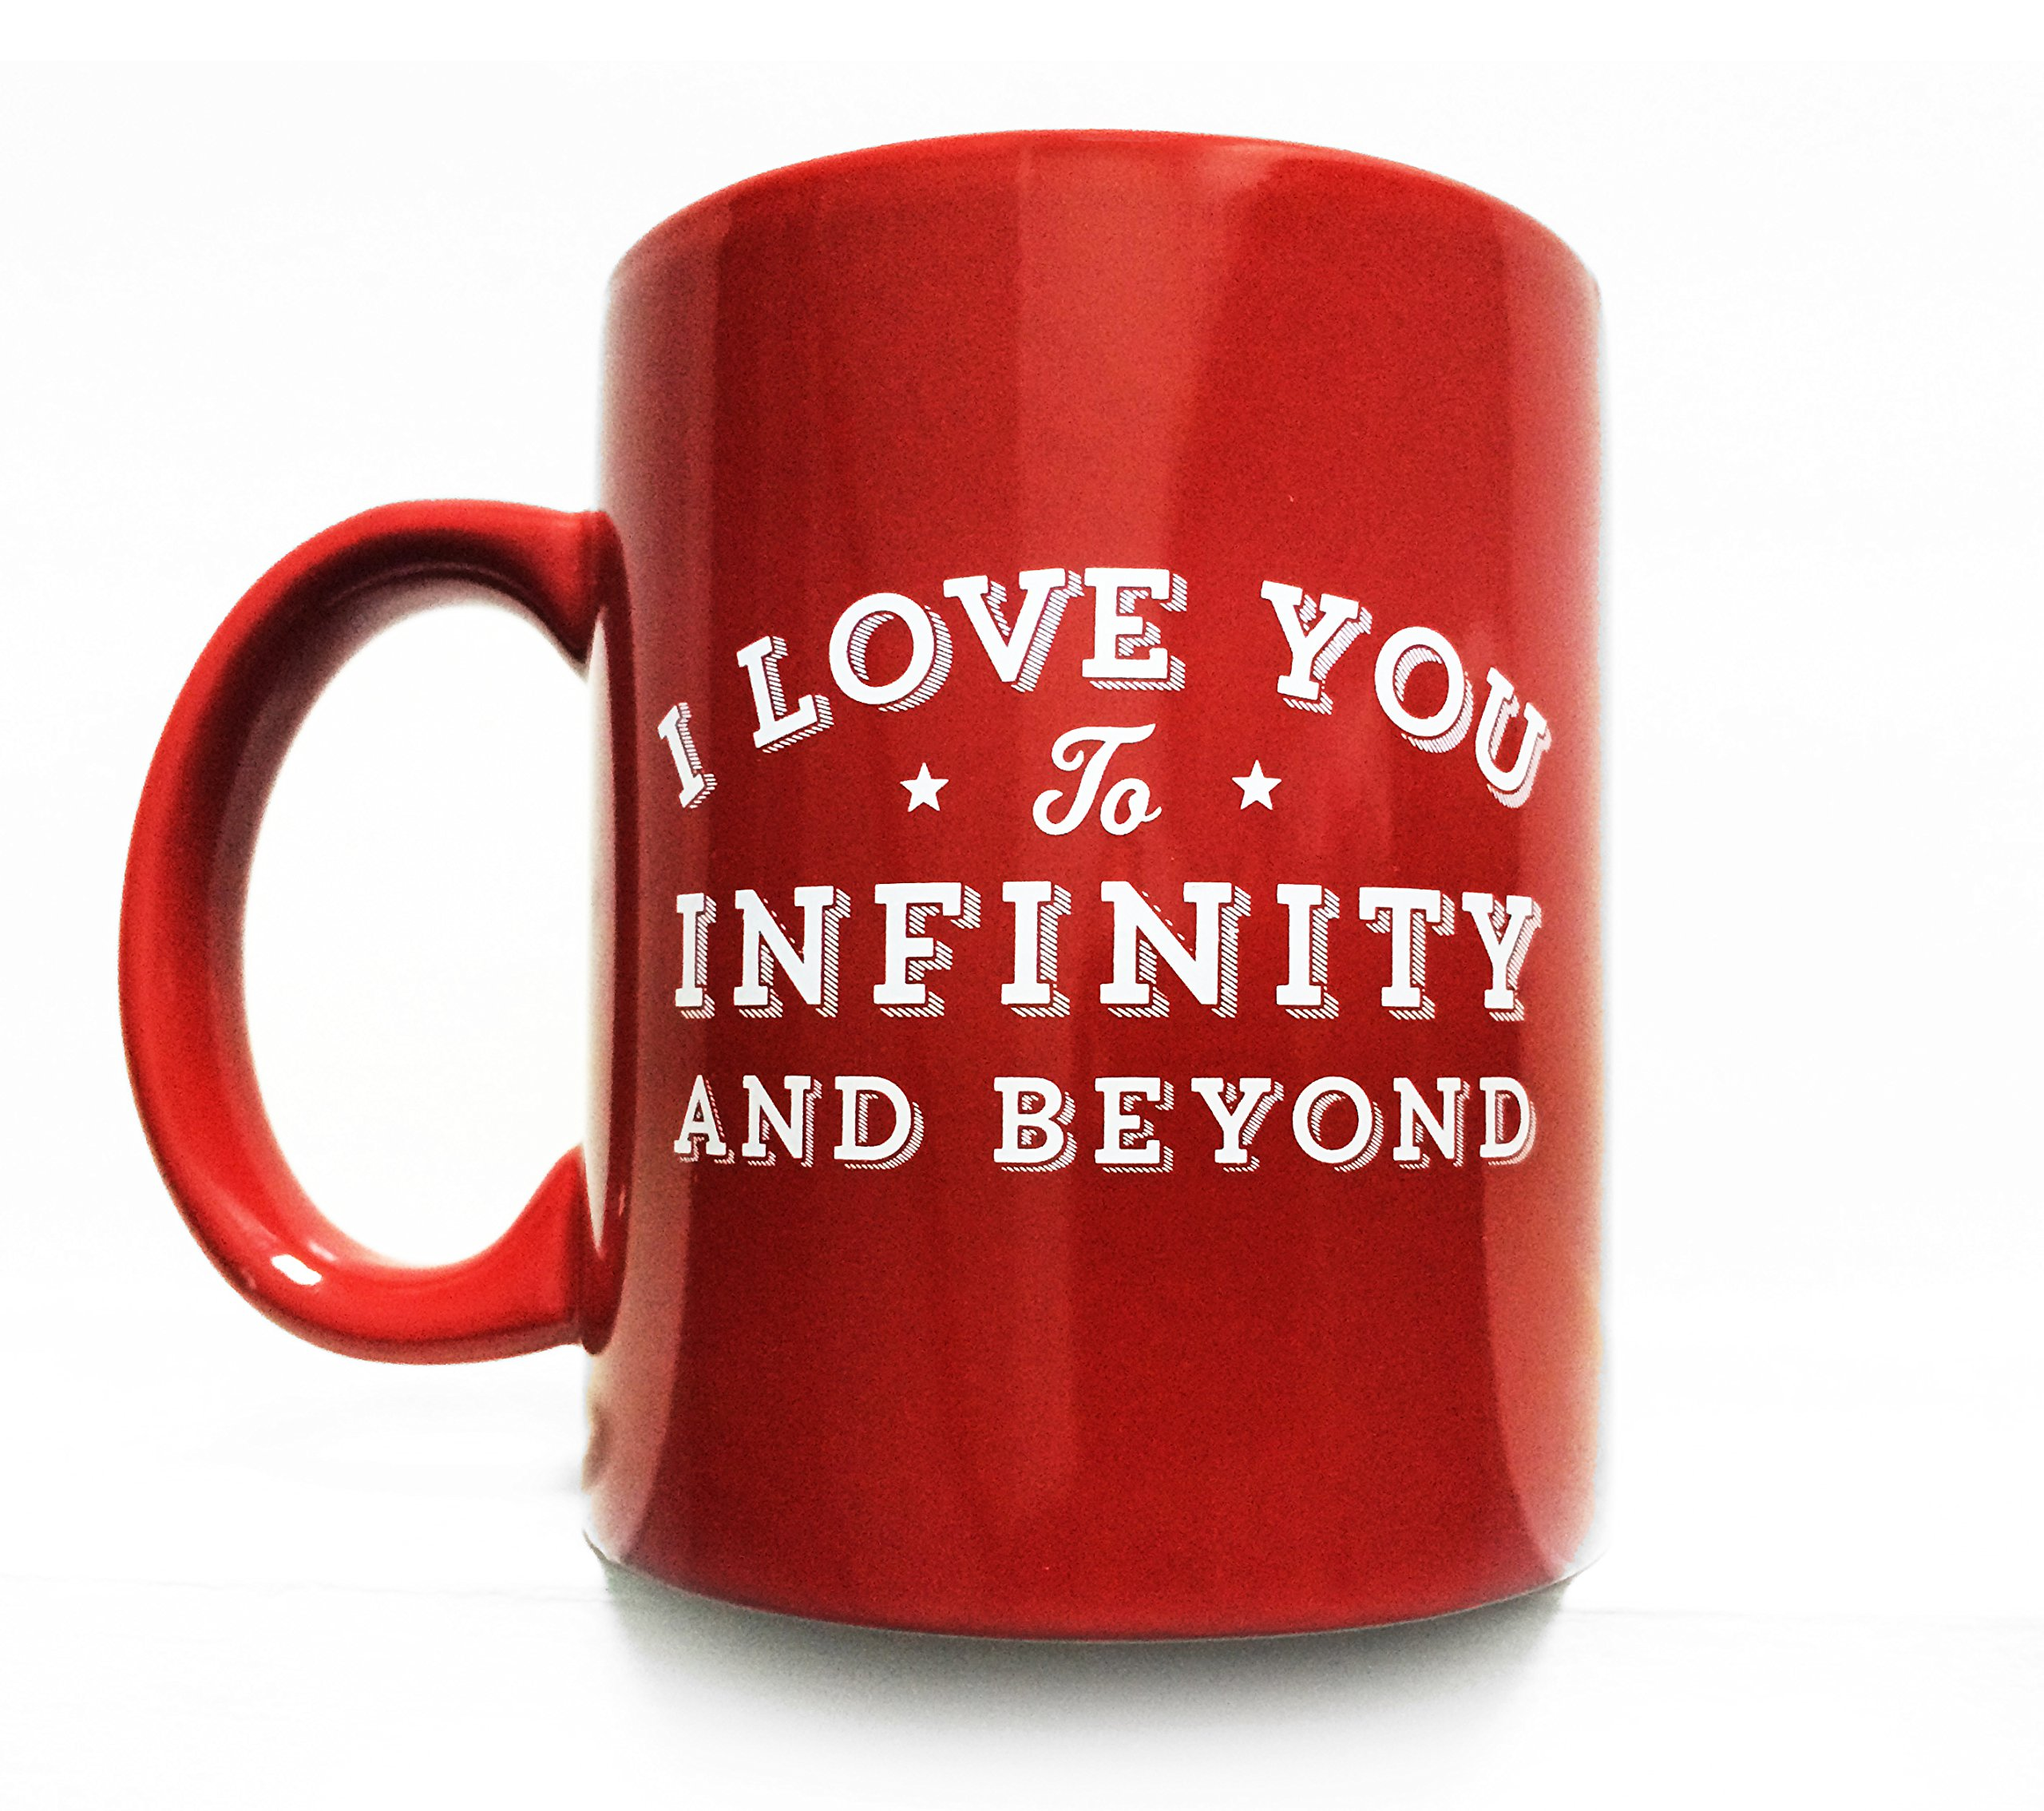 I Love You to Infinity and Beyond 8 oz Coffee Mug- RED